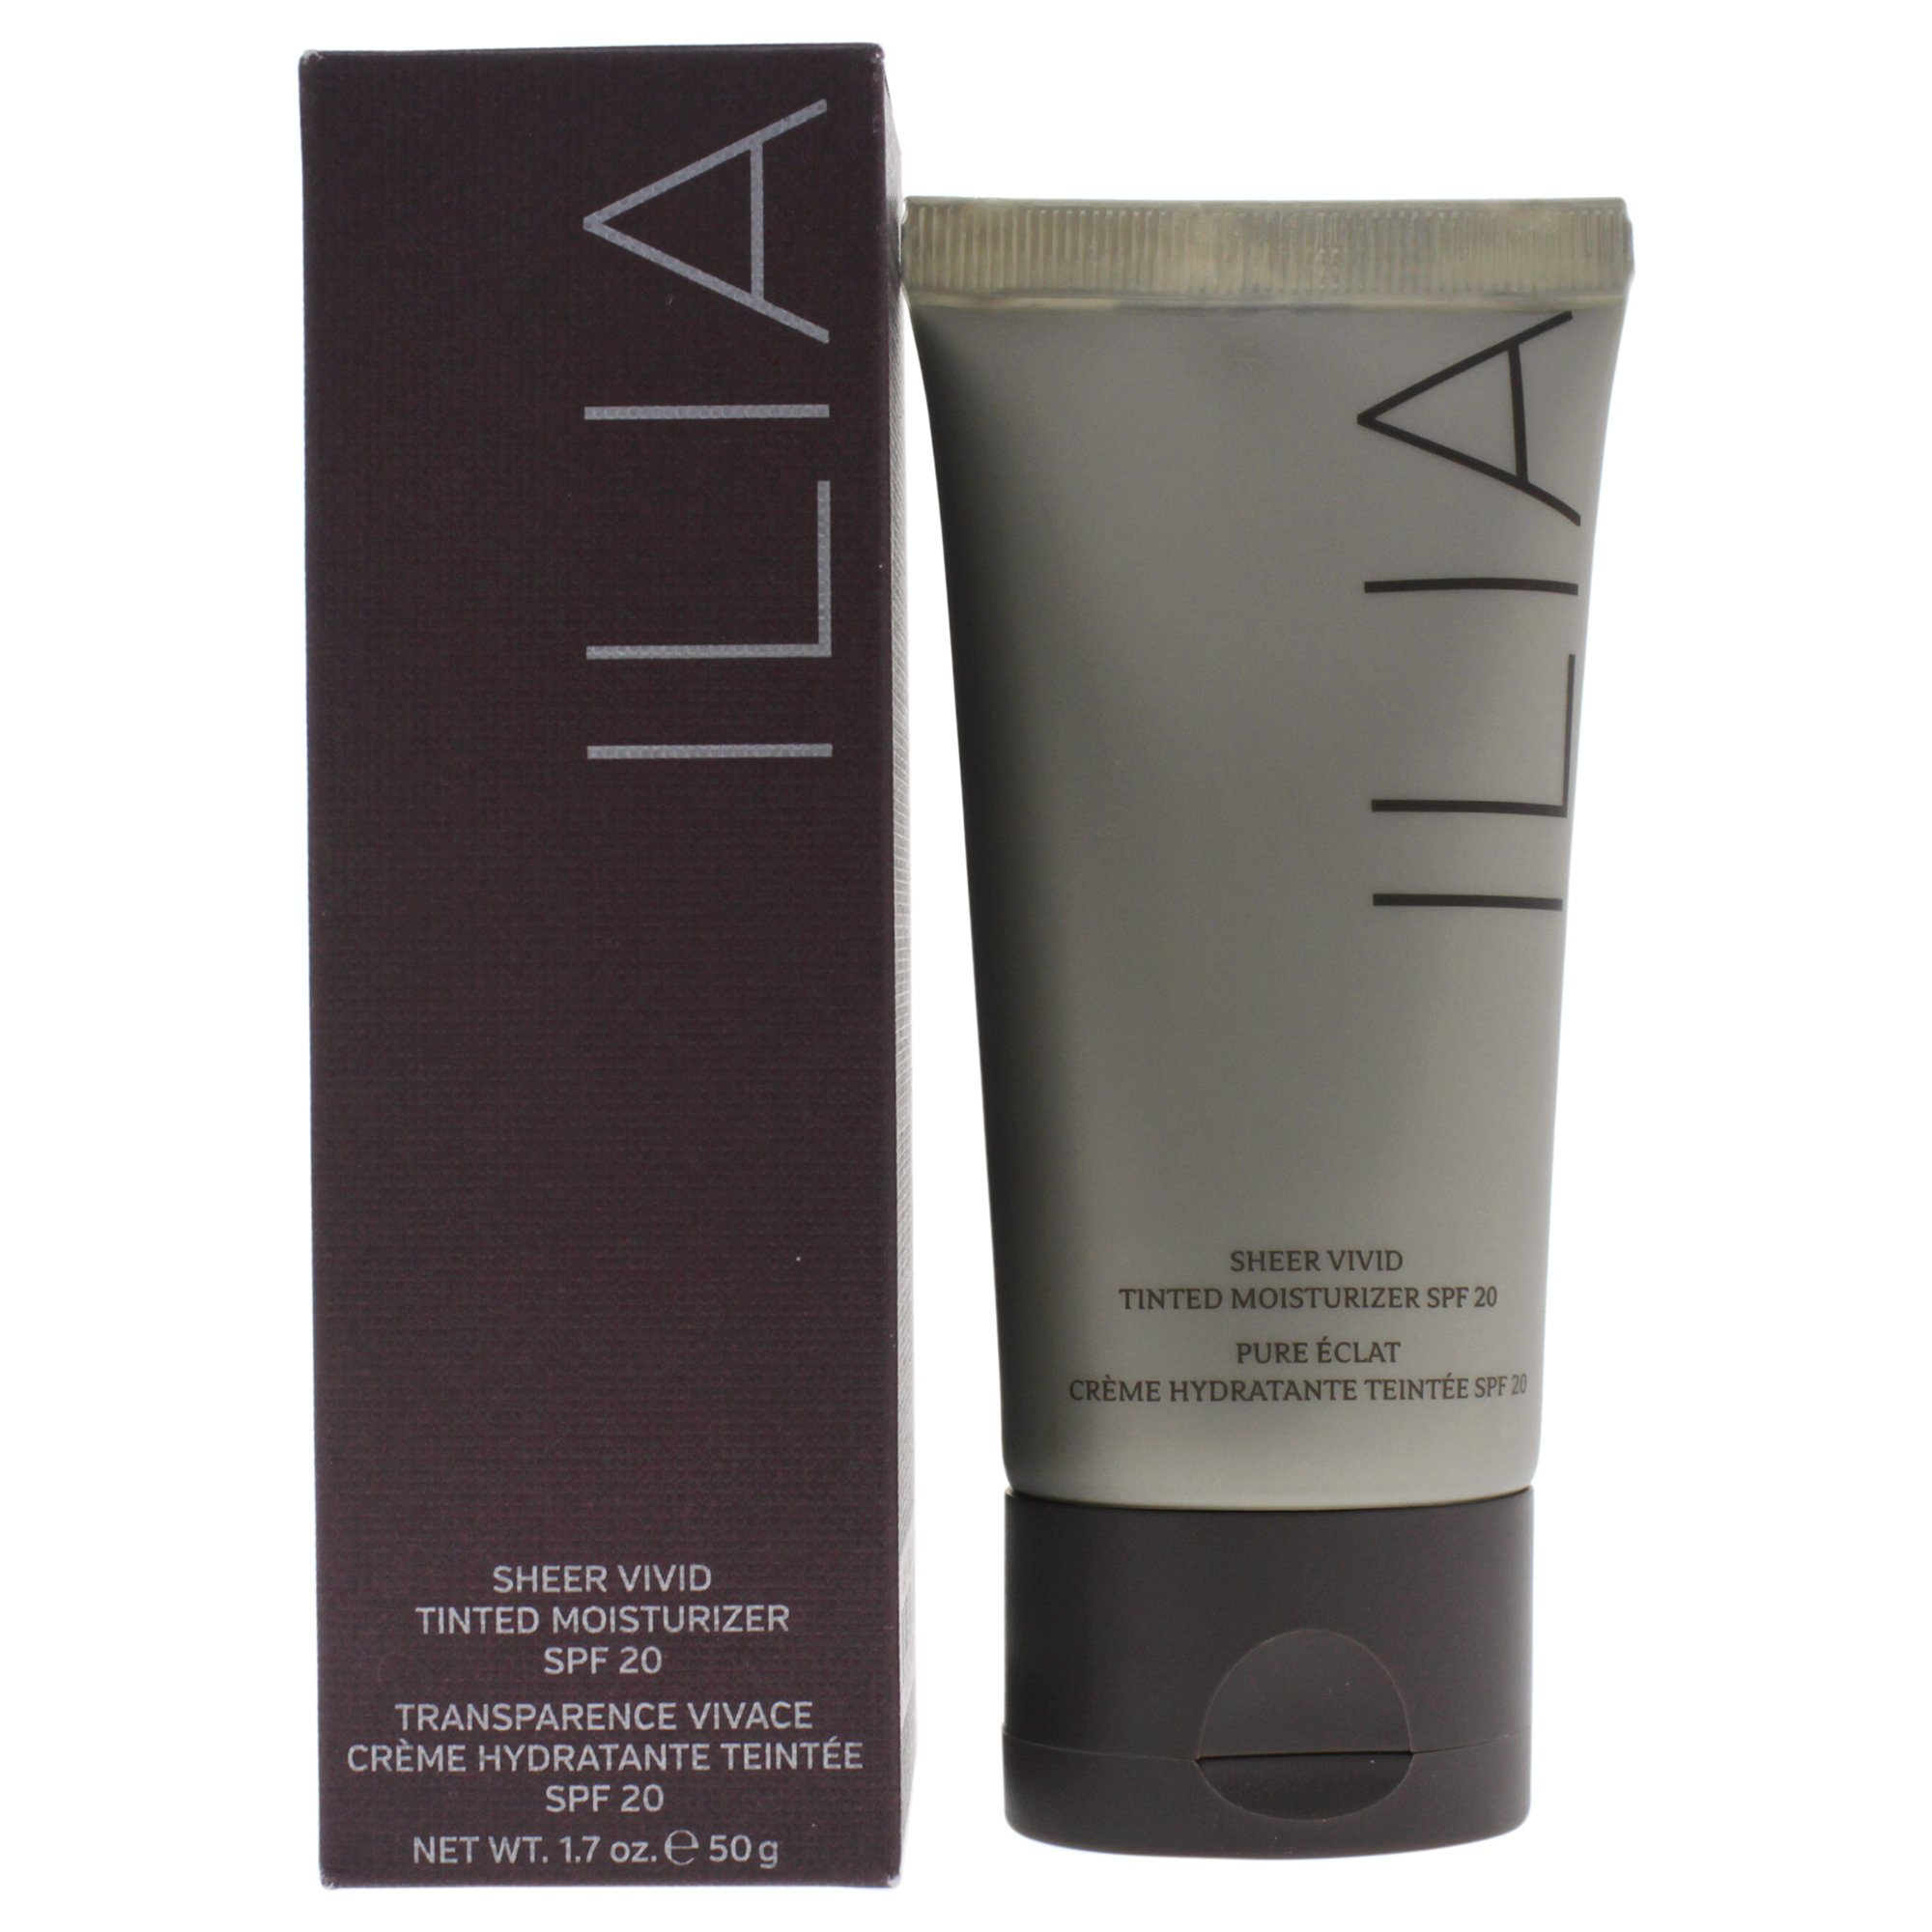 ILIA Beauty Sheer Vivid Tinted Moisturizer Spf 20 Los Roques T1 for Women, 1.7 Ounce